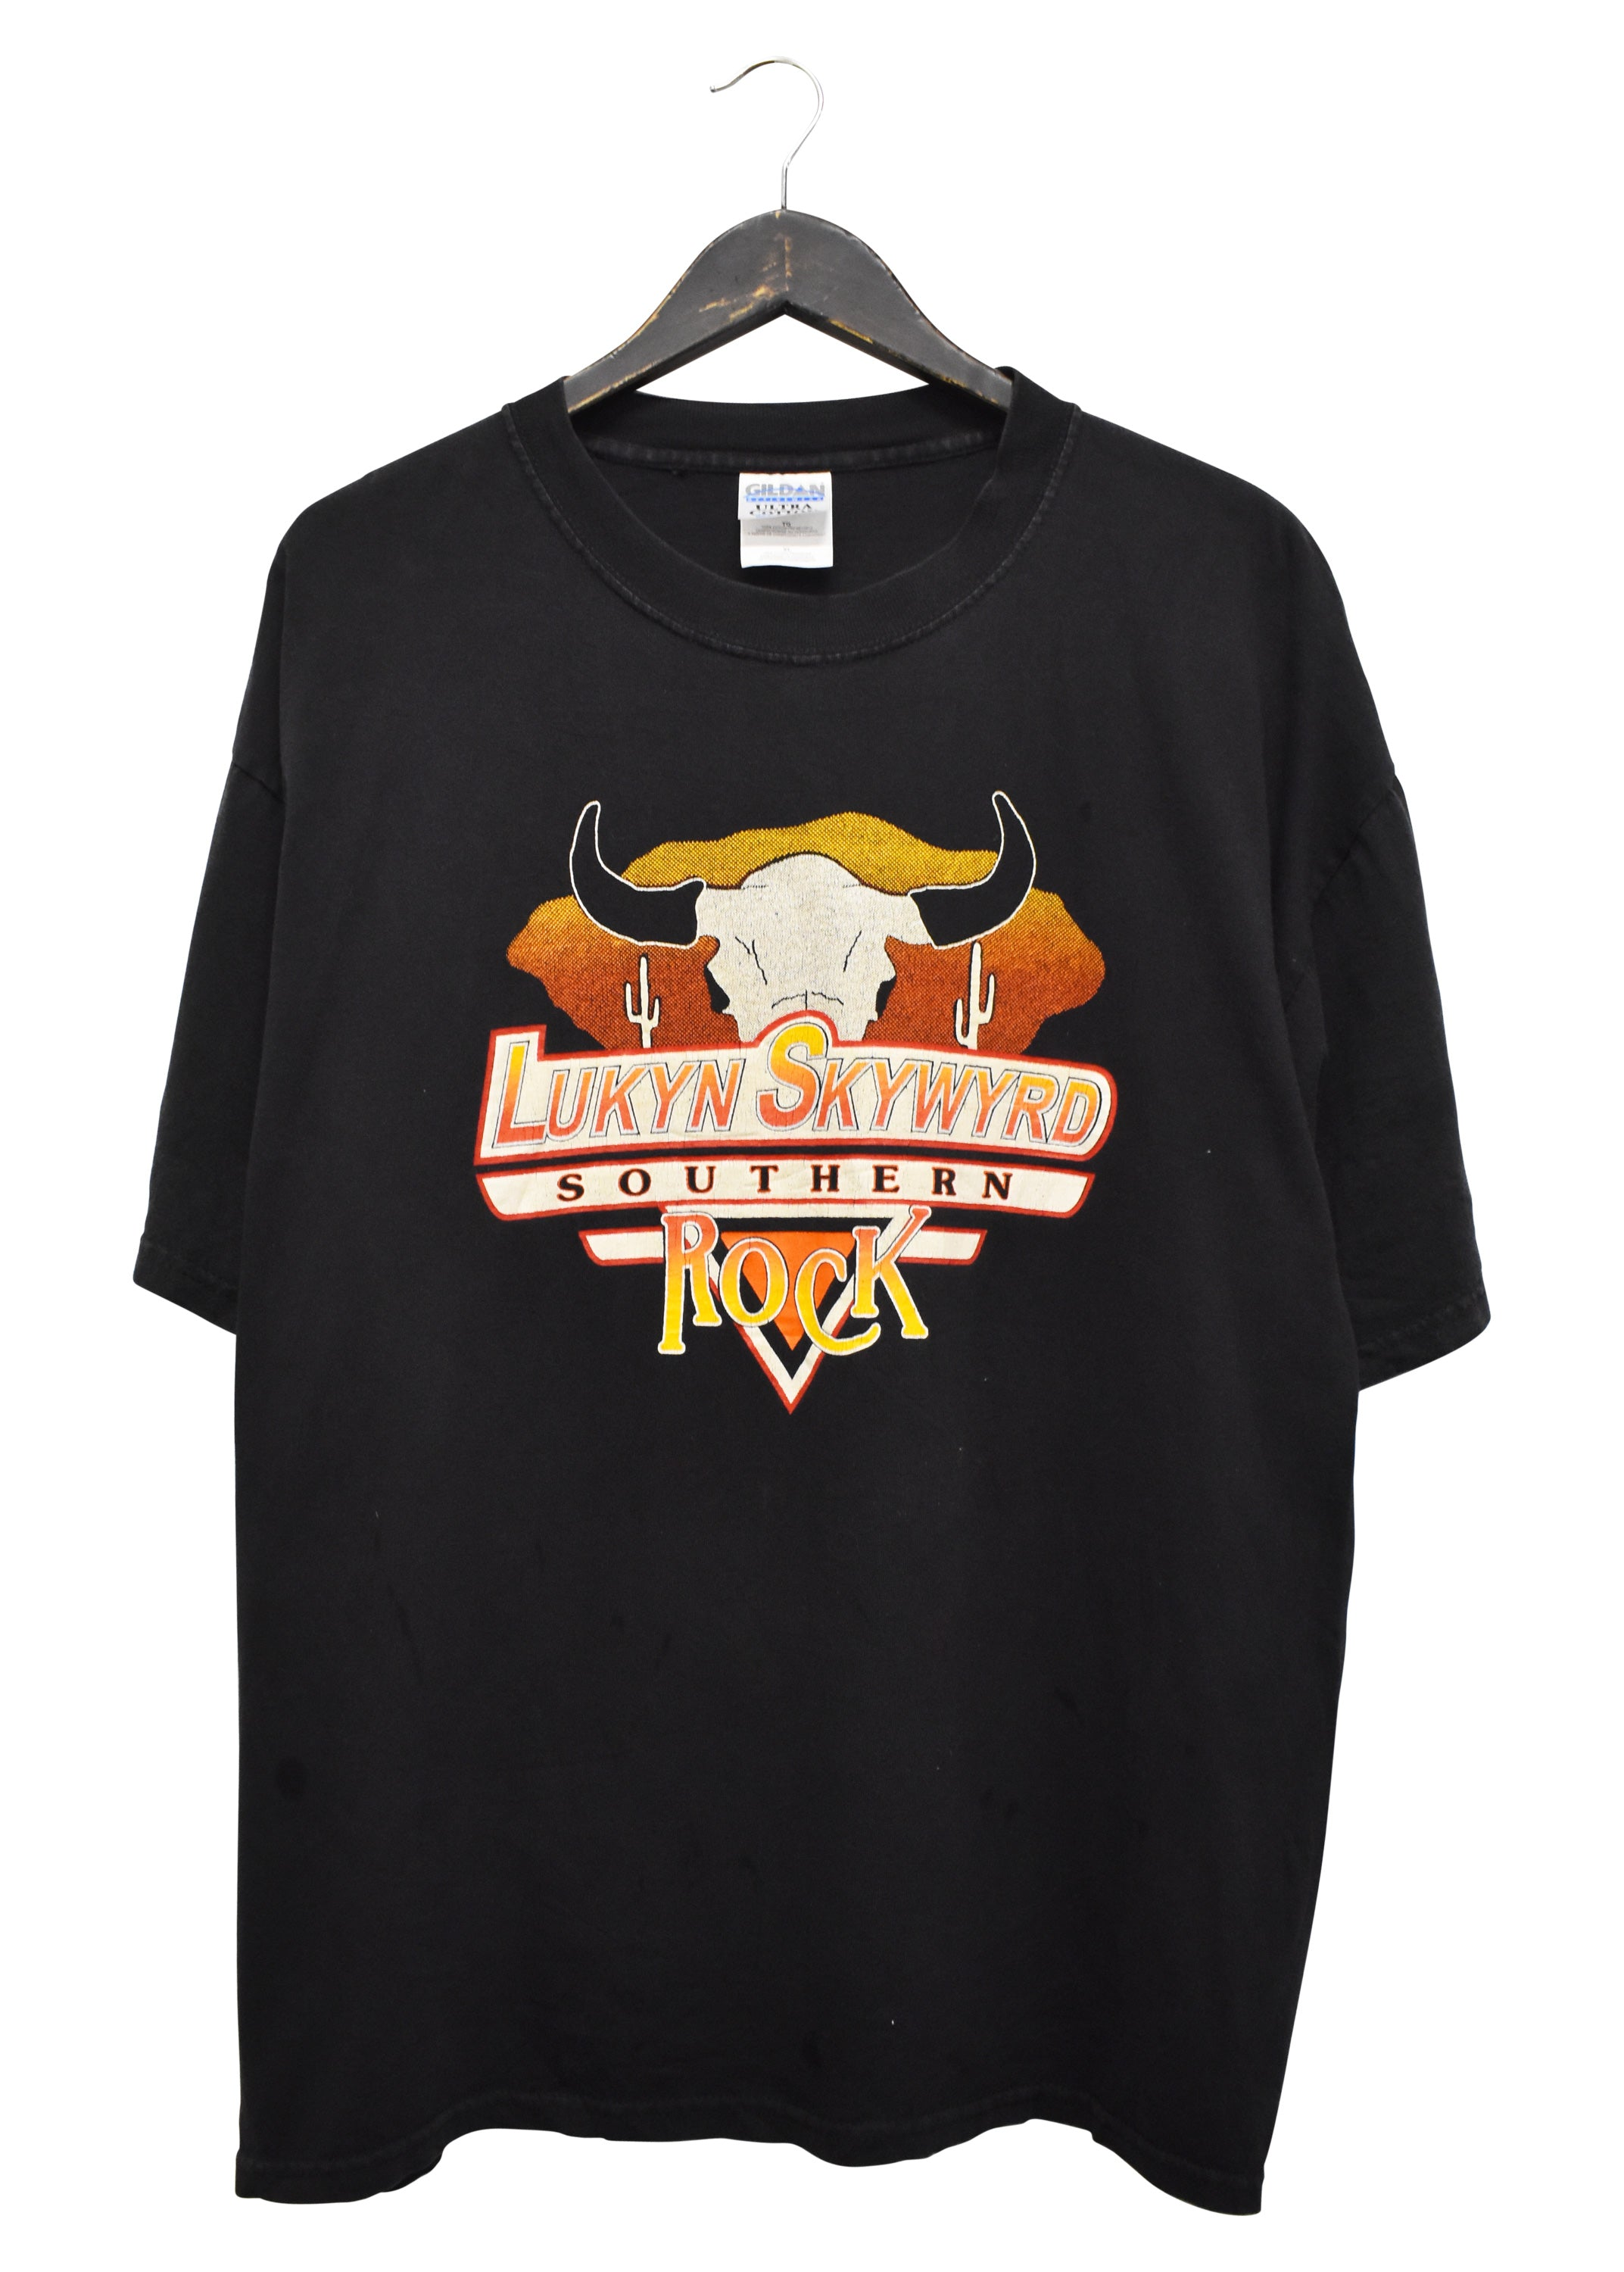 1998 METALLICA '... AND JUSTICE FOR ALL' VINTAGE TEE